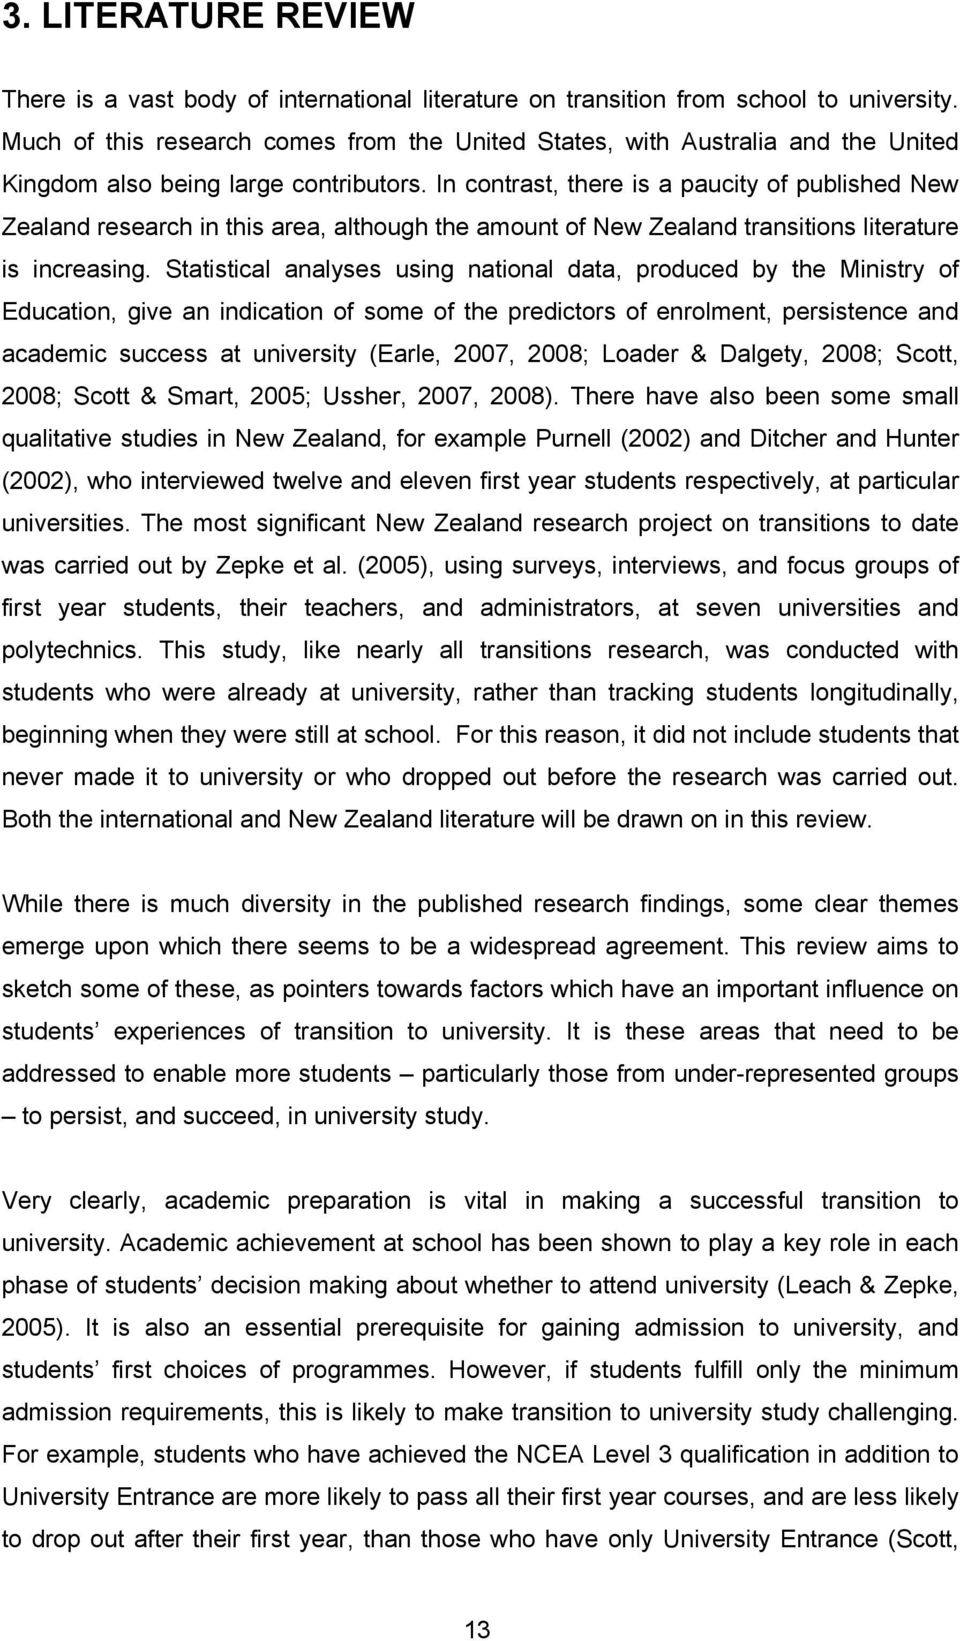 In contrast, there is a paucity of published New Zealand research in this area, although the amount of New Zealand transitions literature is increasing.